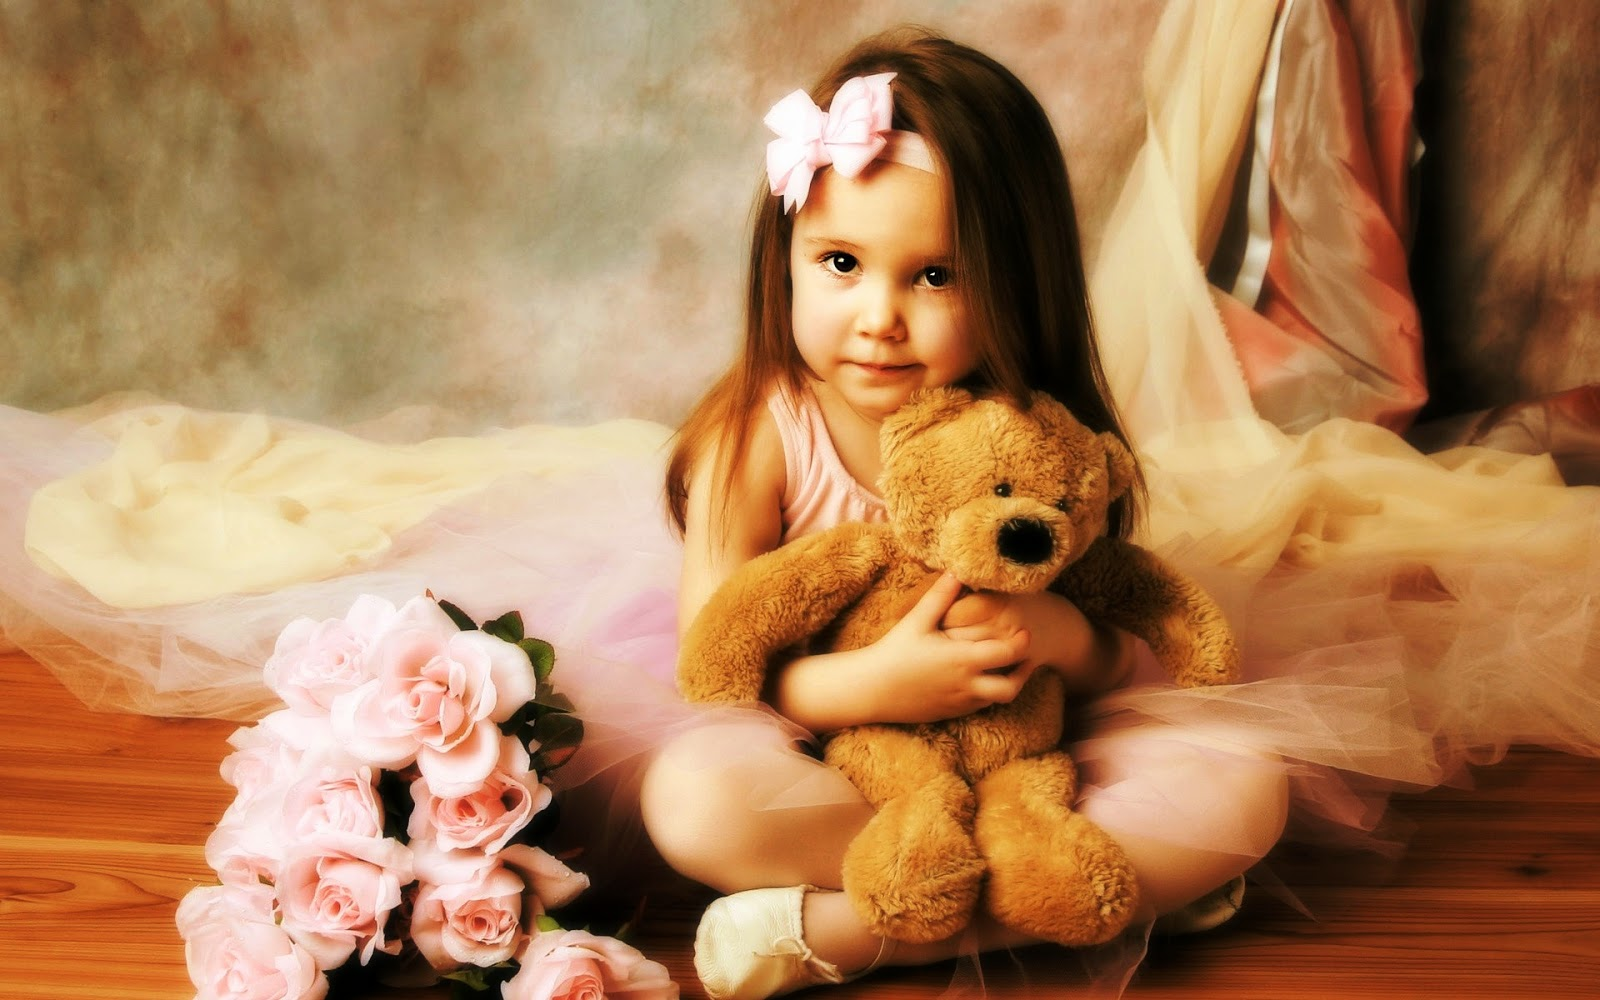 Teddy Bear Day Cute Girl hd Images Wallpaper Pics